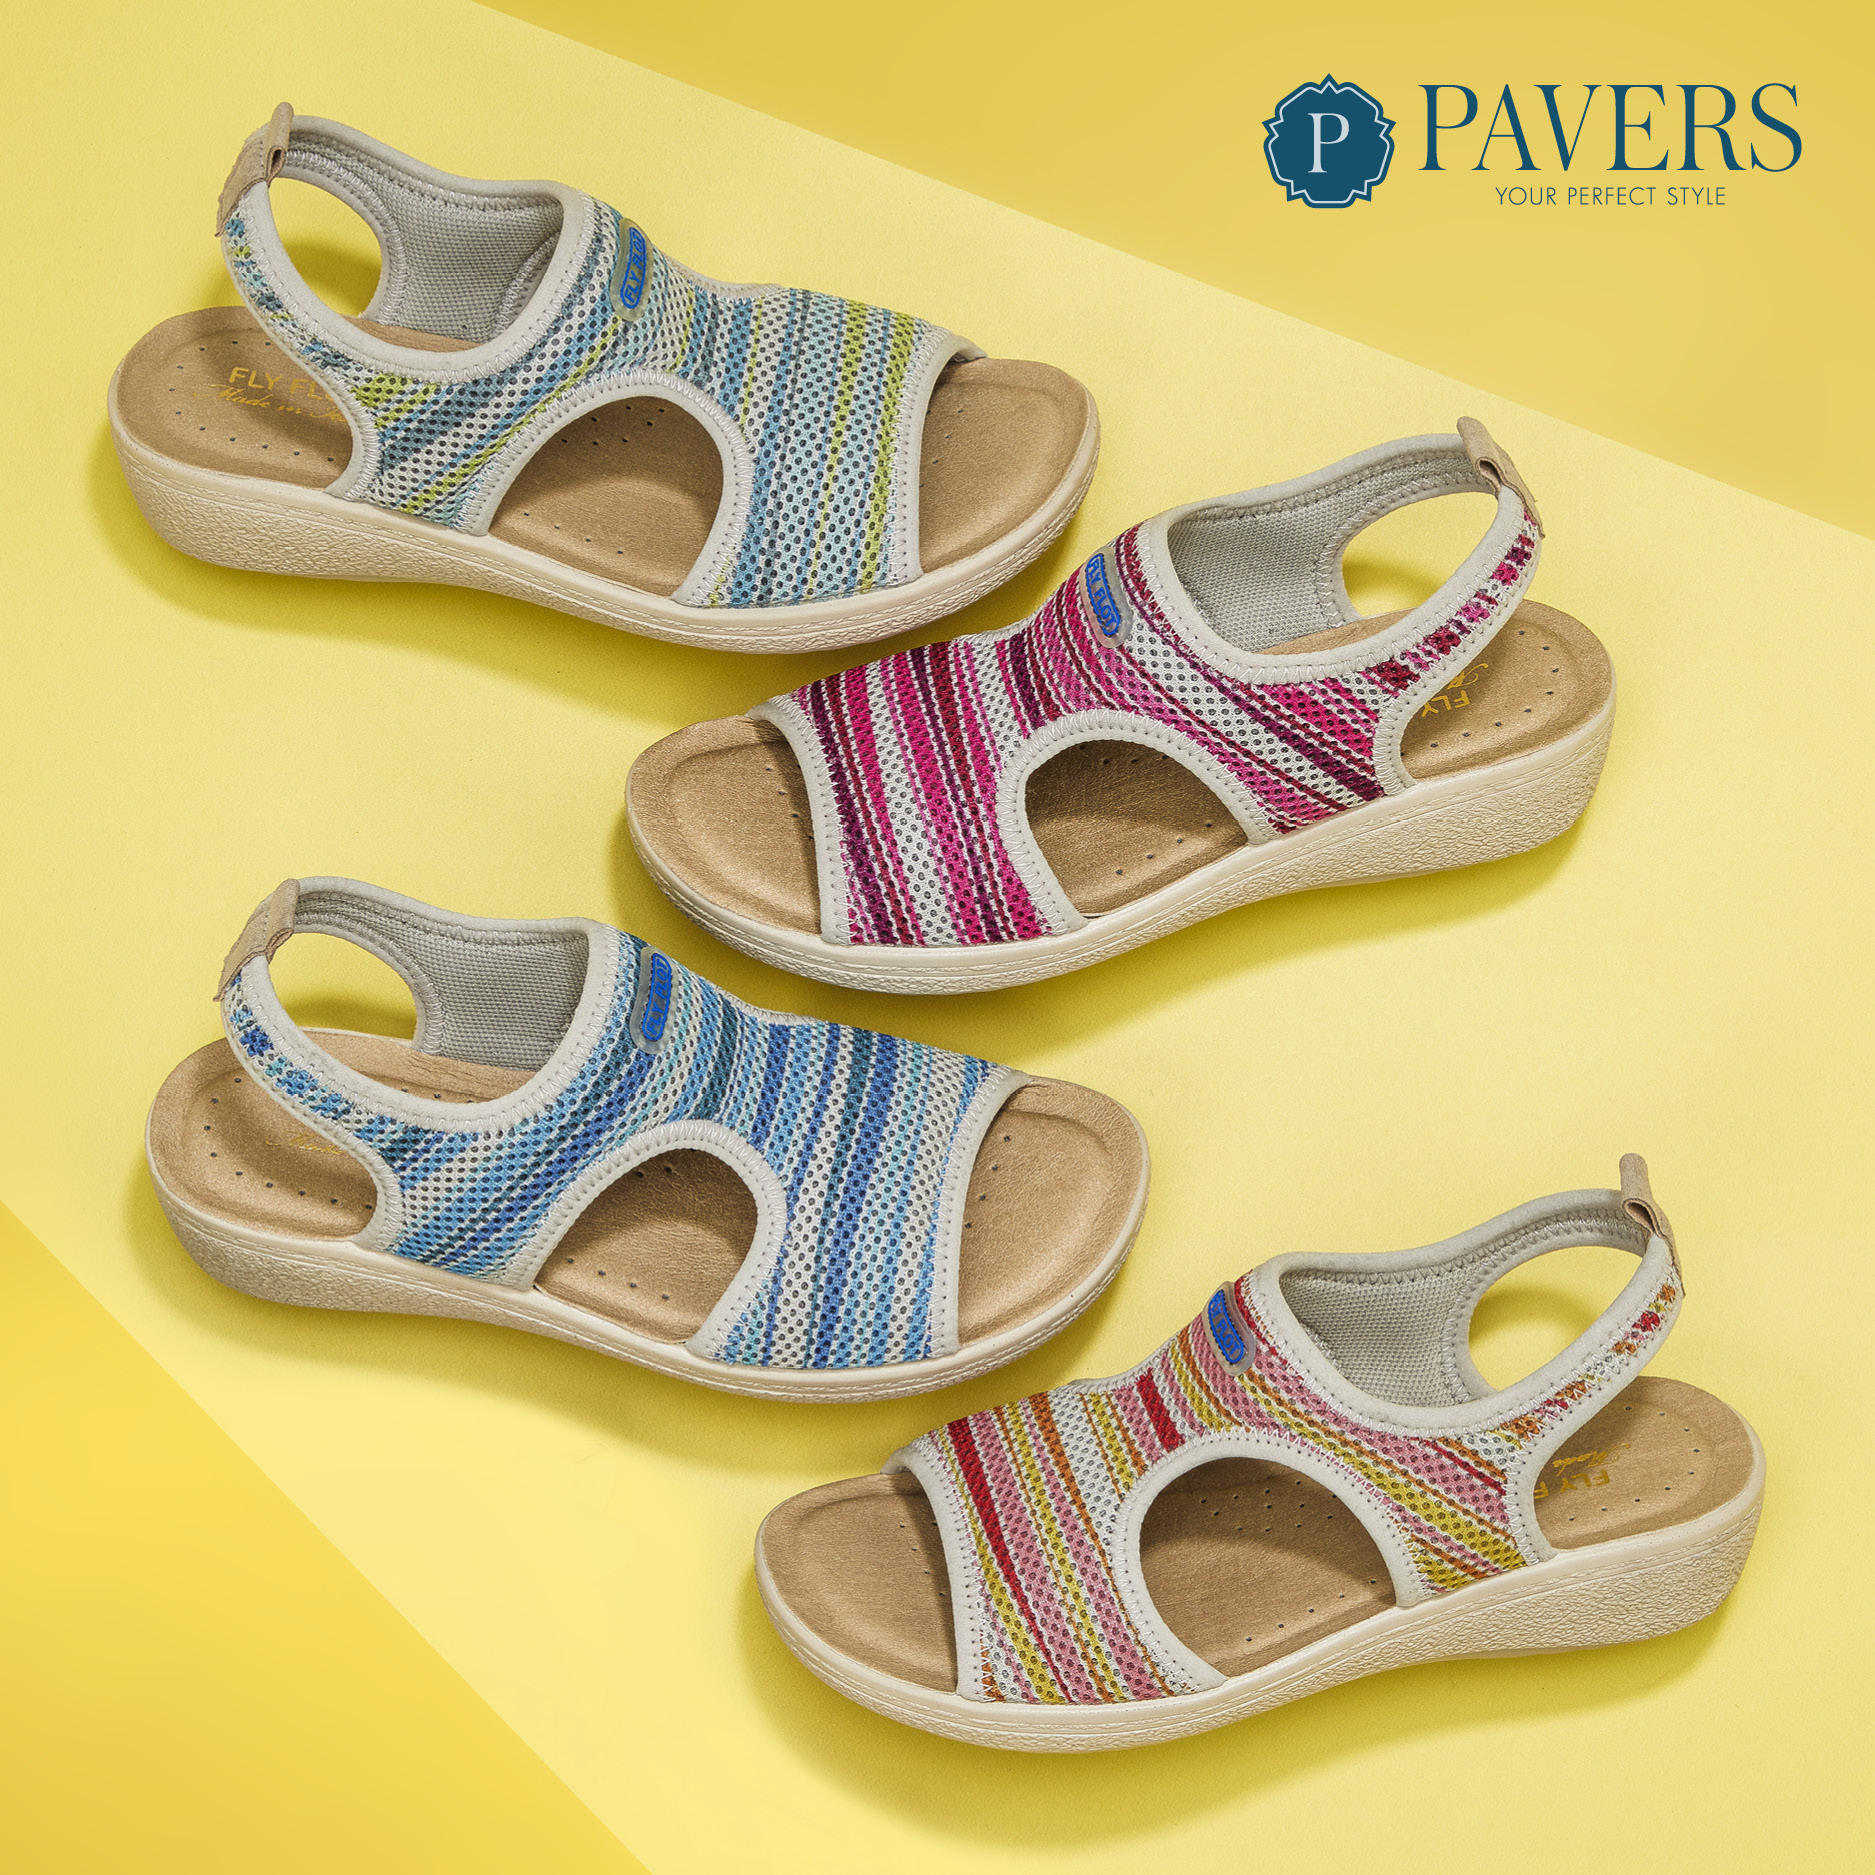 dfe96690c Pavers Shoes - Brighton Marina